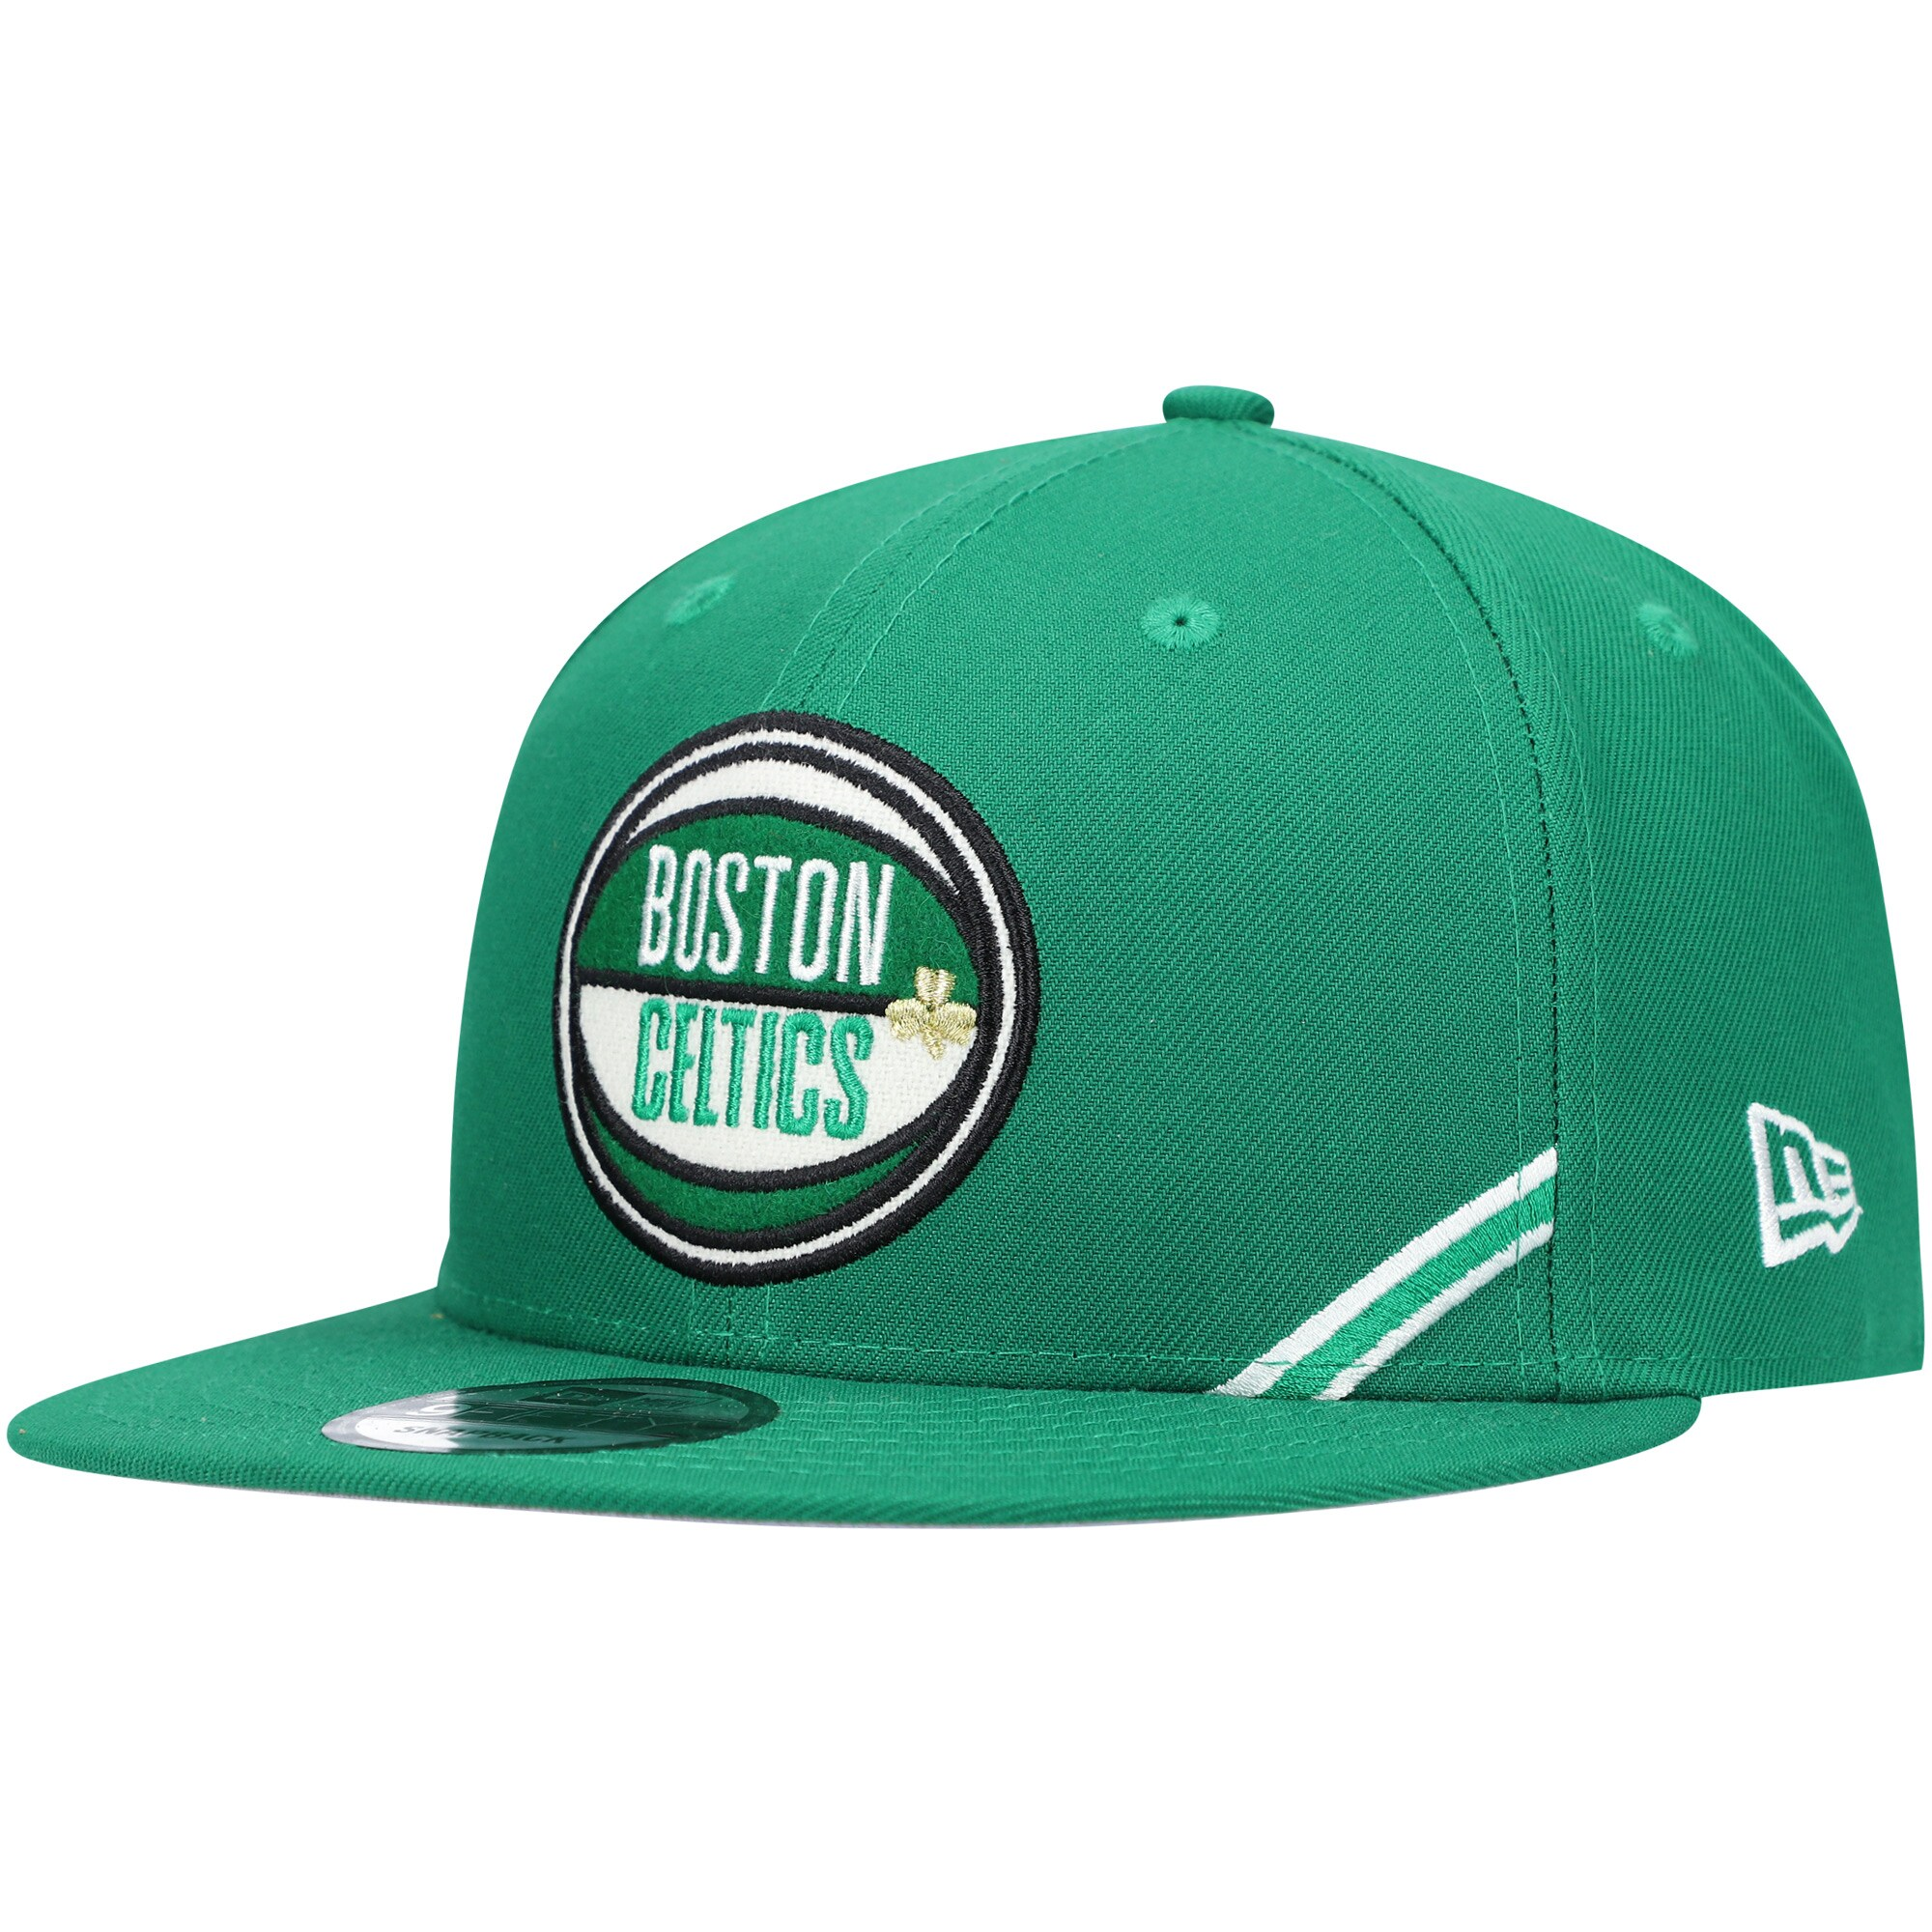 Boston Celtics New Era 2019 Draft 9FIFTY Snapback Hat - Kelly Green